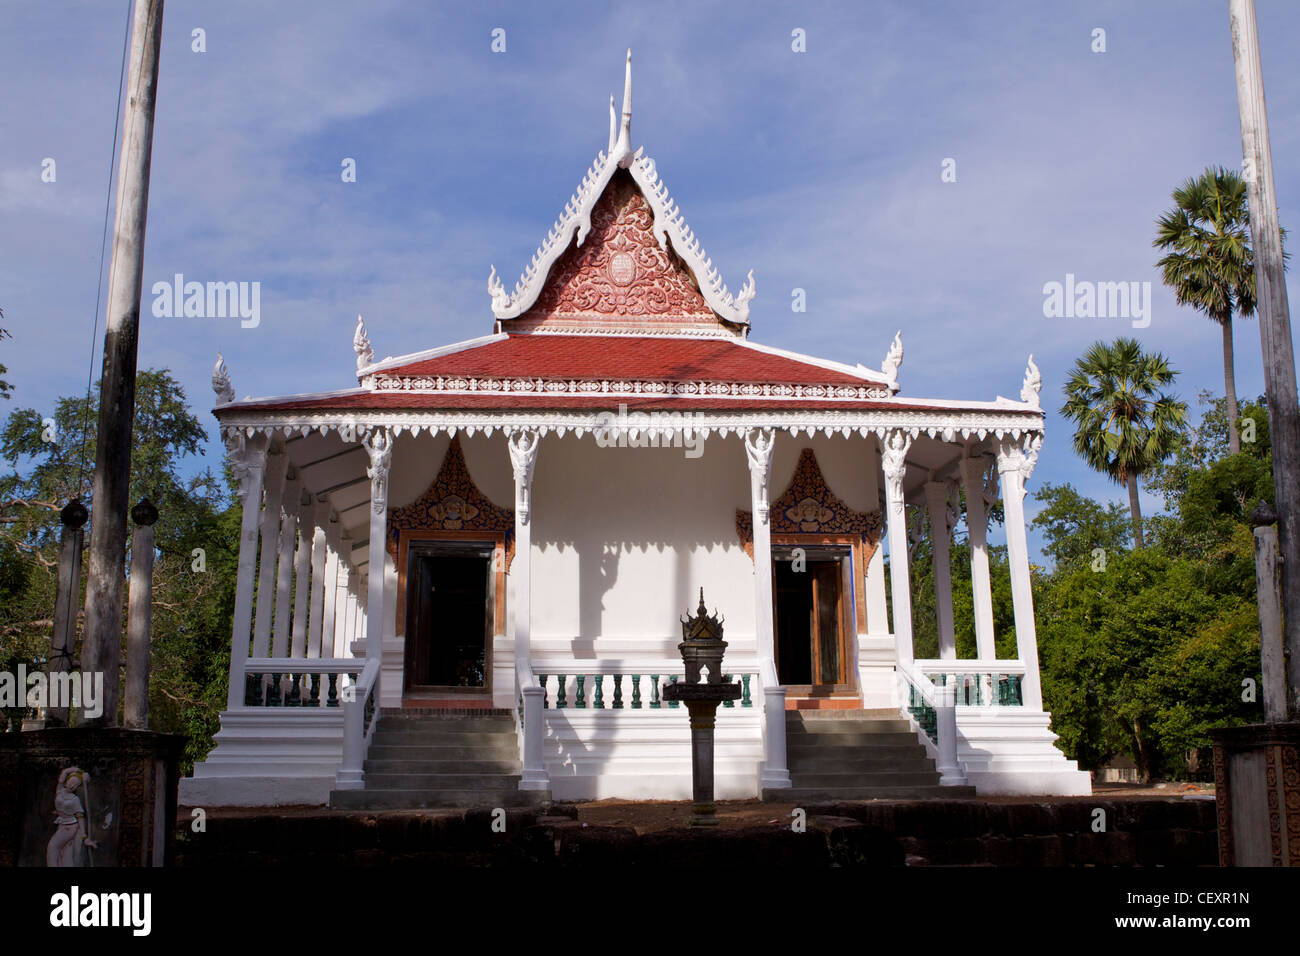 Original Wat Kampong Tralach 'Vihara' against a blue sky with palm trees, desecrated by the Khmer Rouge - Stock Image